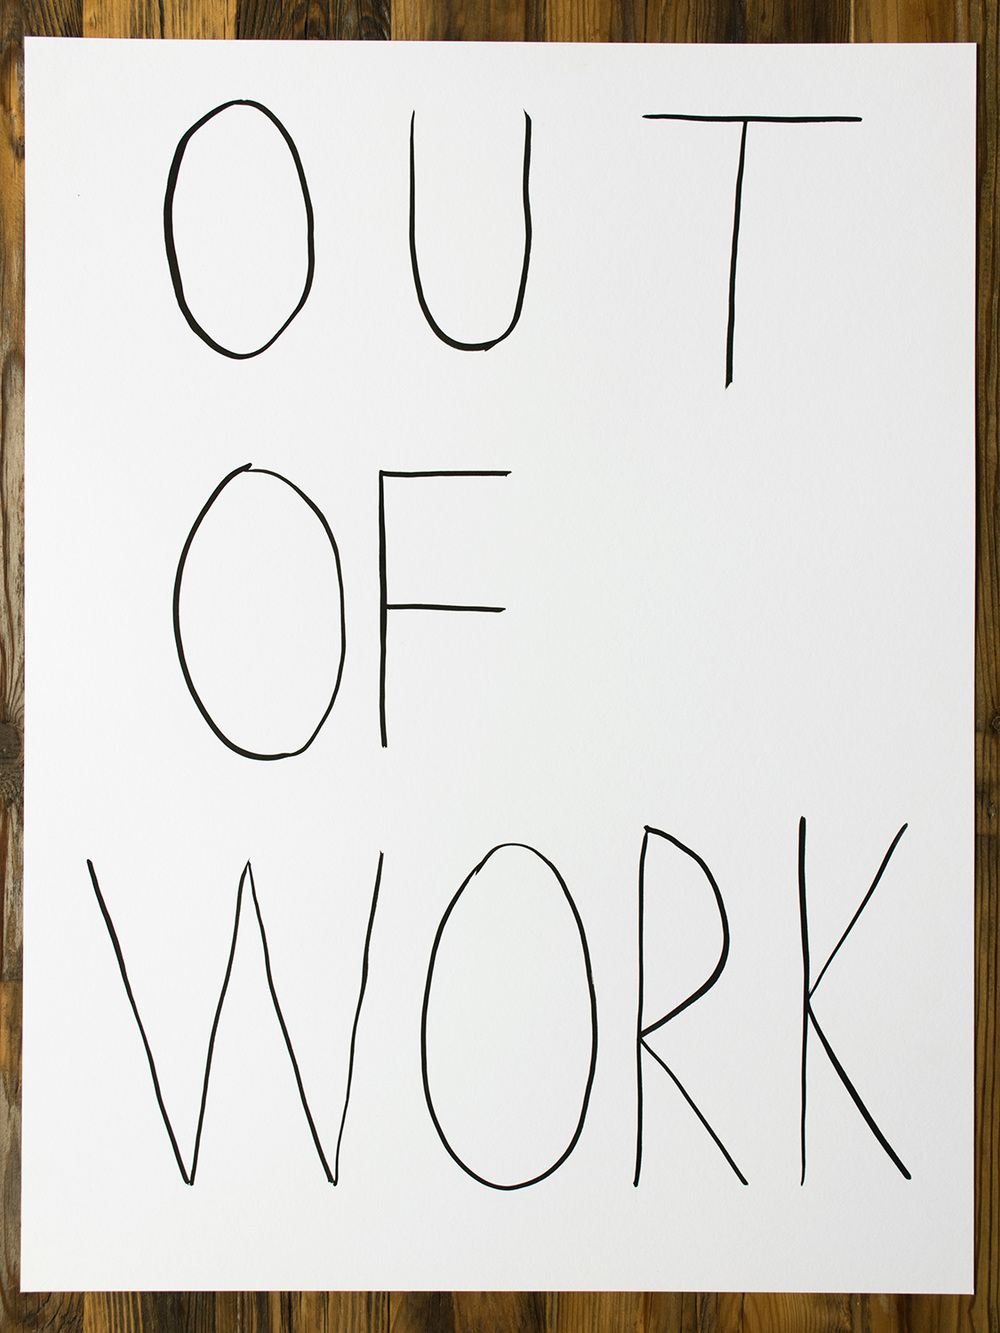 out_of_work-1500x1125.jpg